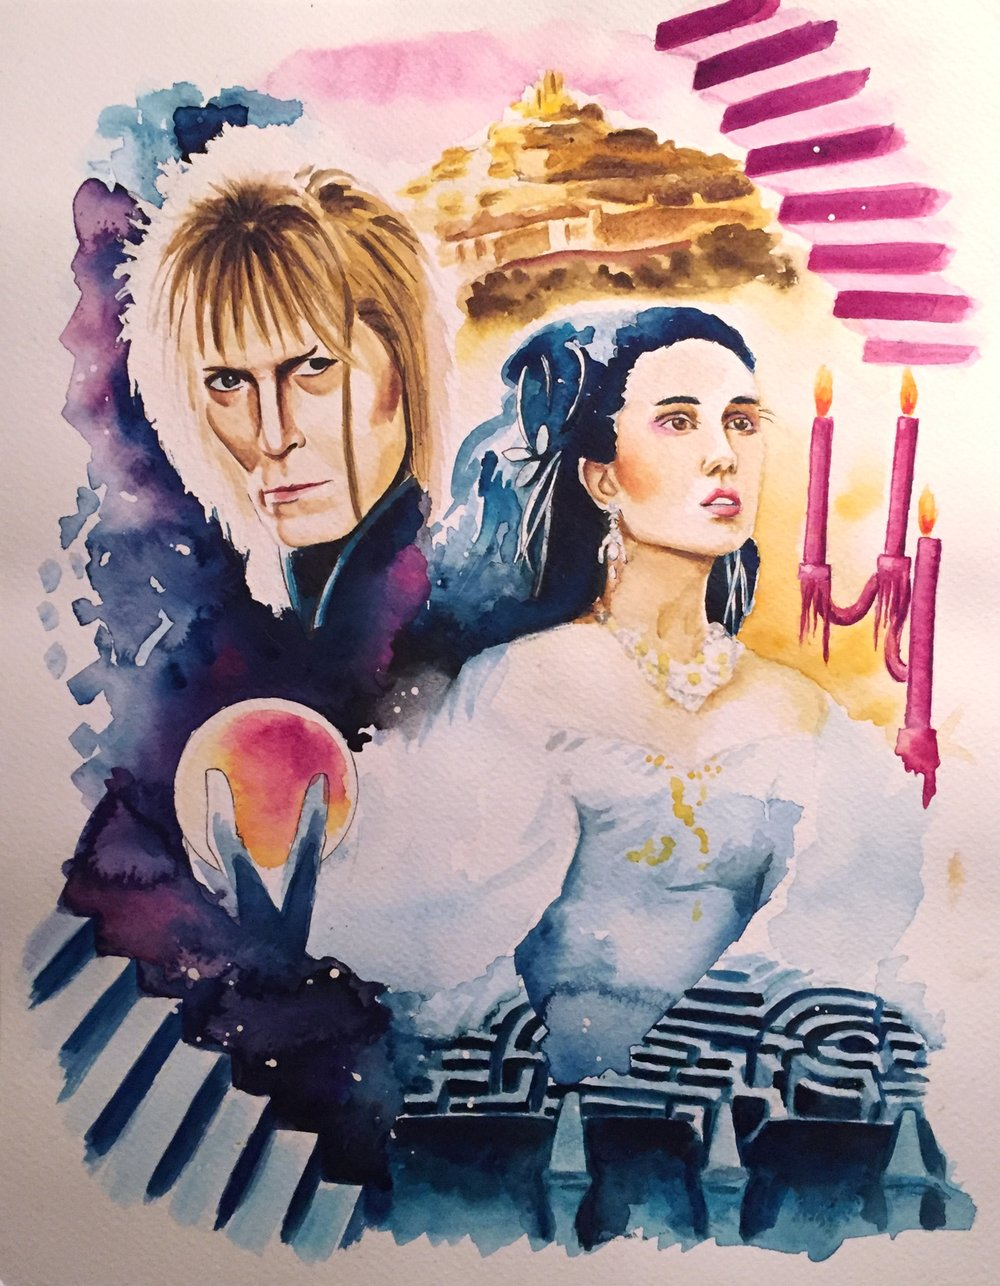 Commissioned Piece Inspired by the movie Labyinth  Watercolor on Watercolor Paper